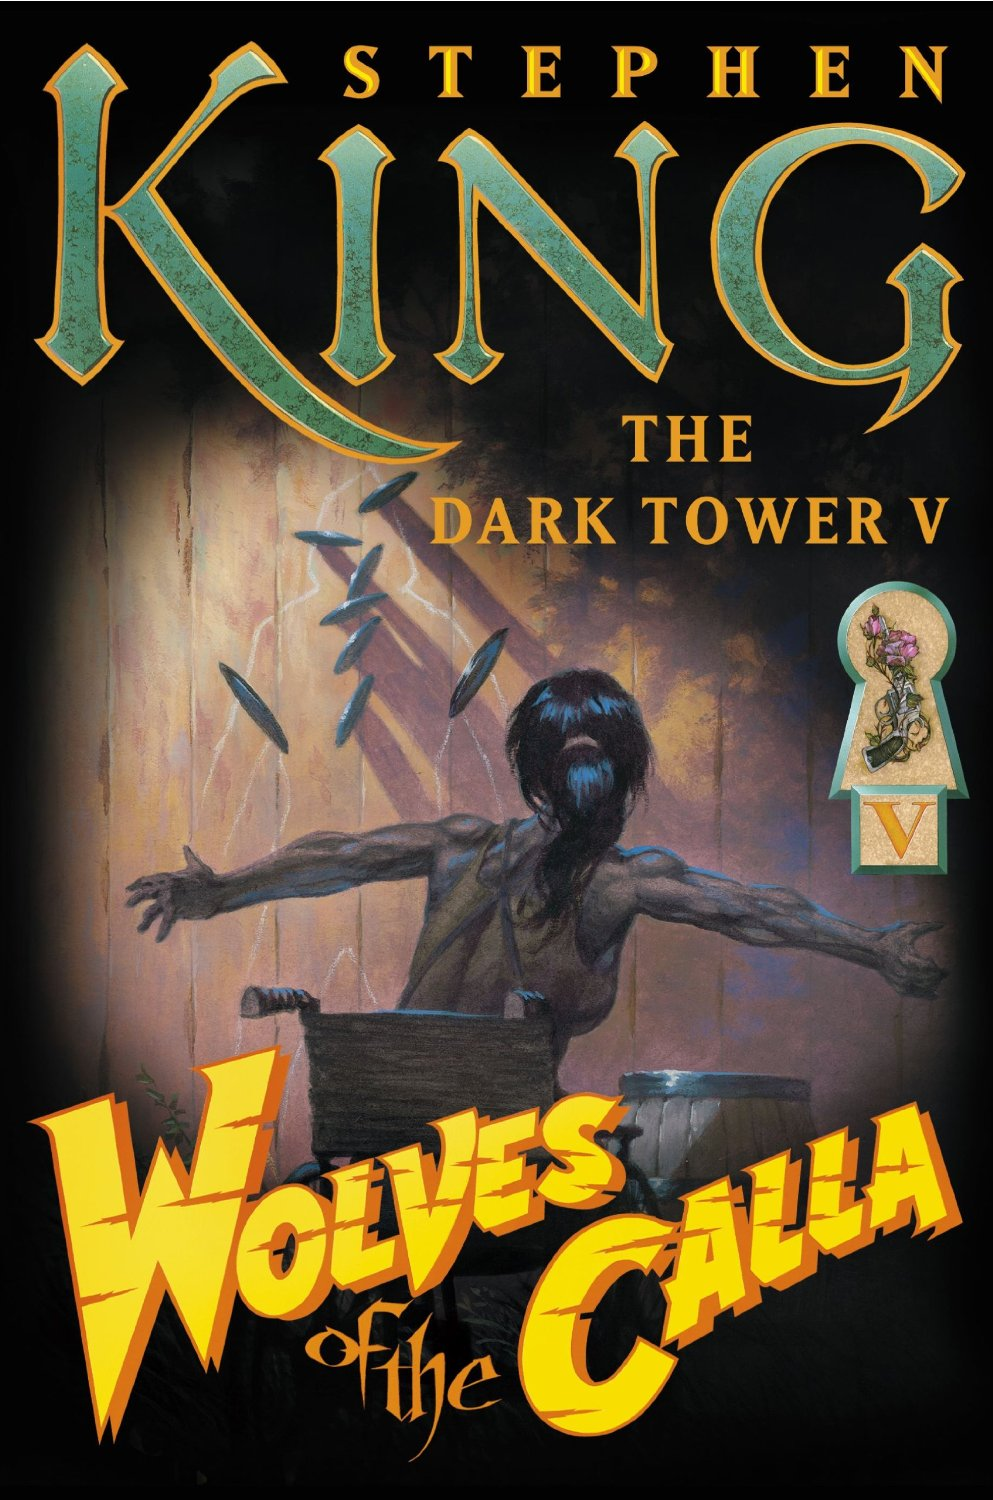 wolves of the calla Behold, The Stephen King Cinematic Universe!